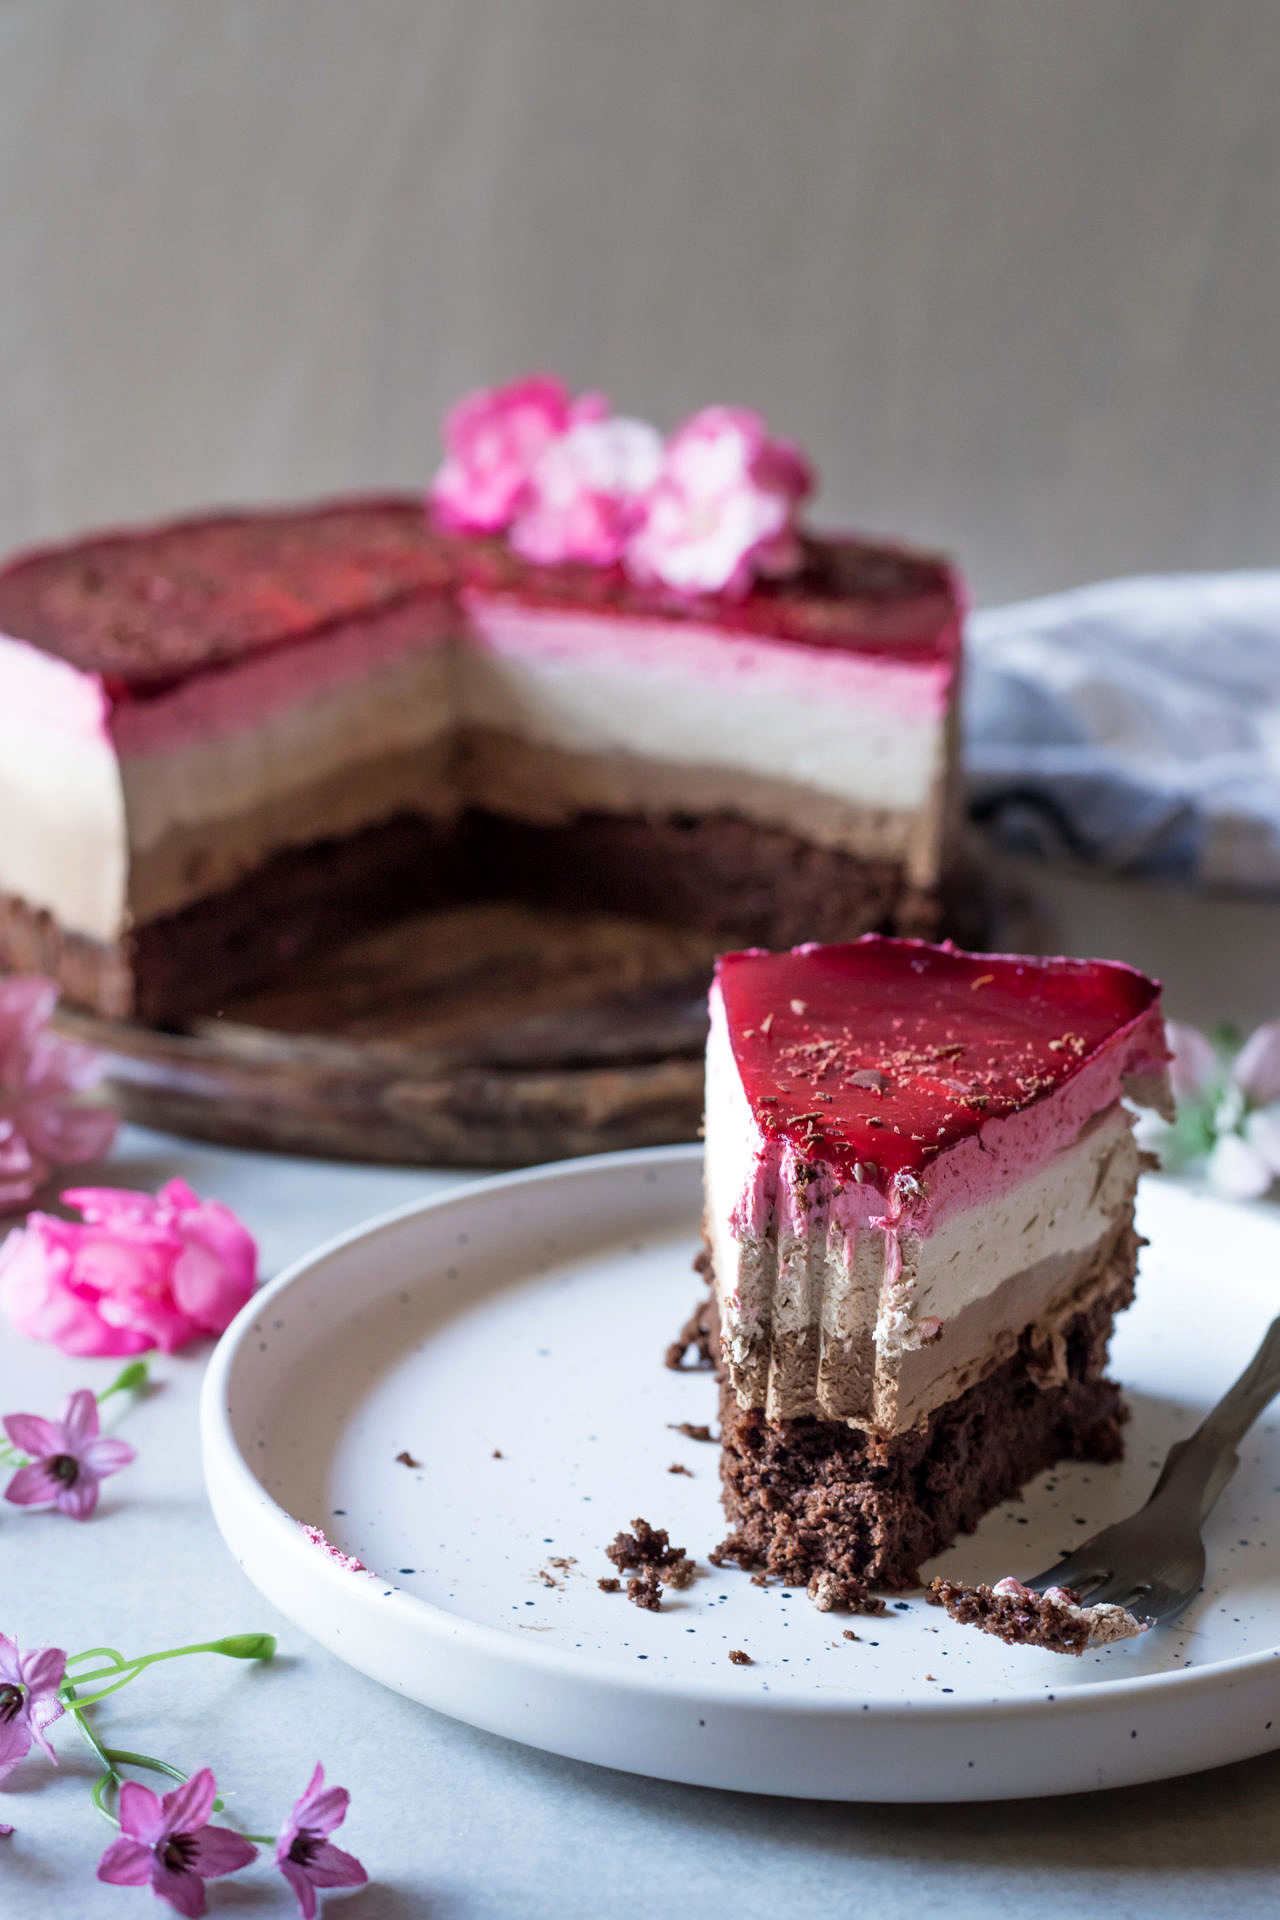 The best Gluten-Free Chocolate and Raspberry Mousse Cake. It is low FODMAP and Lactose-Free, plus super chocolatey, fruity, refreshing and very flavorful.